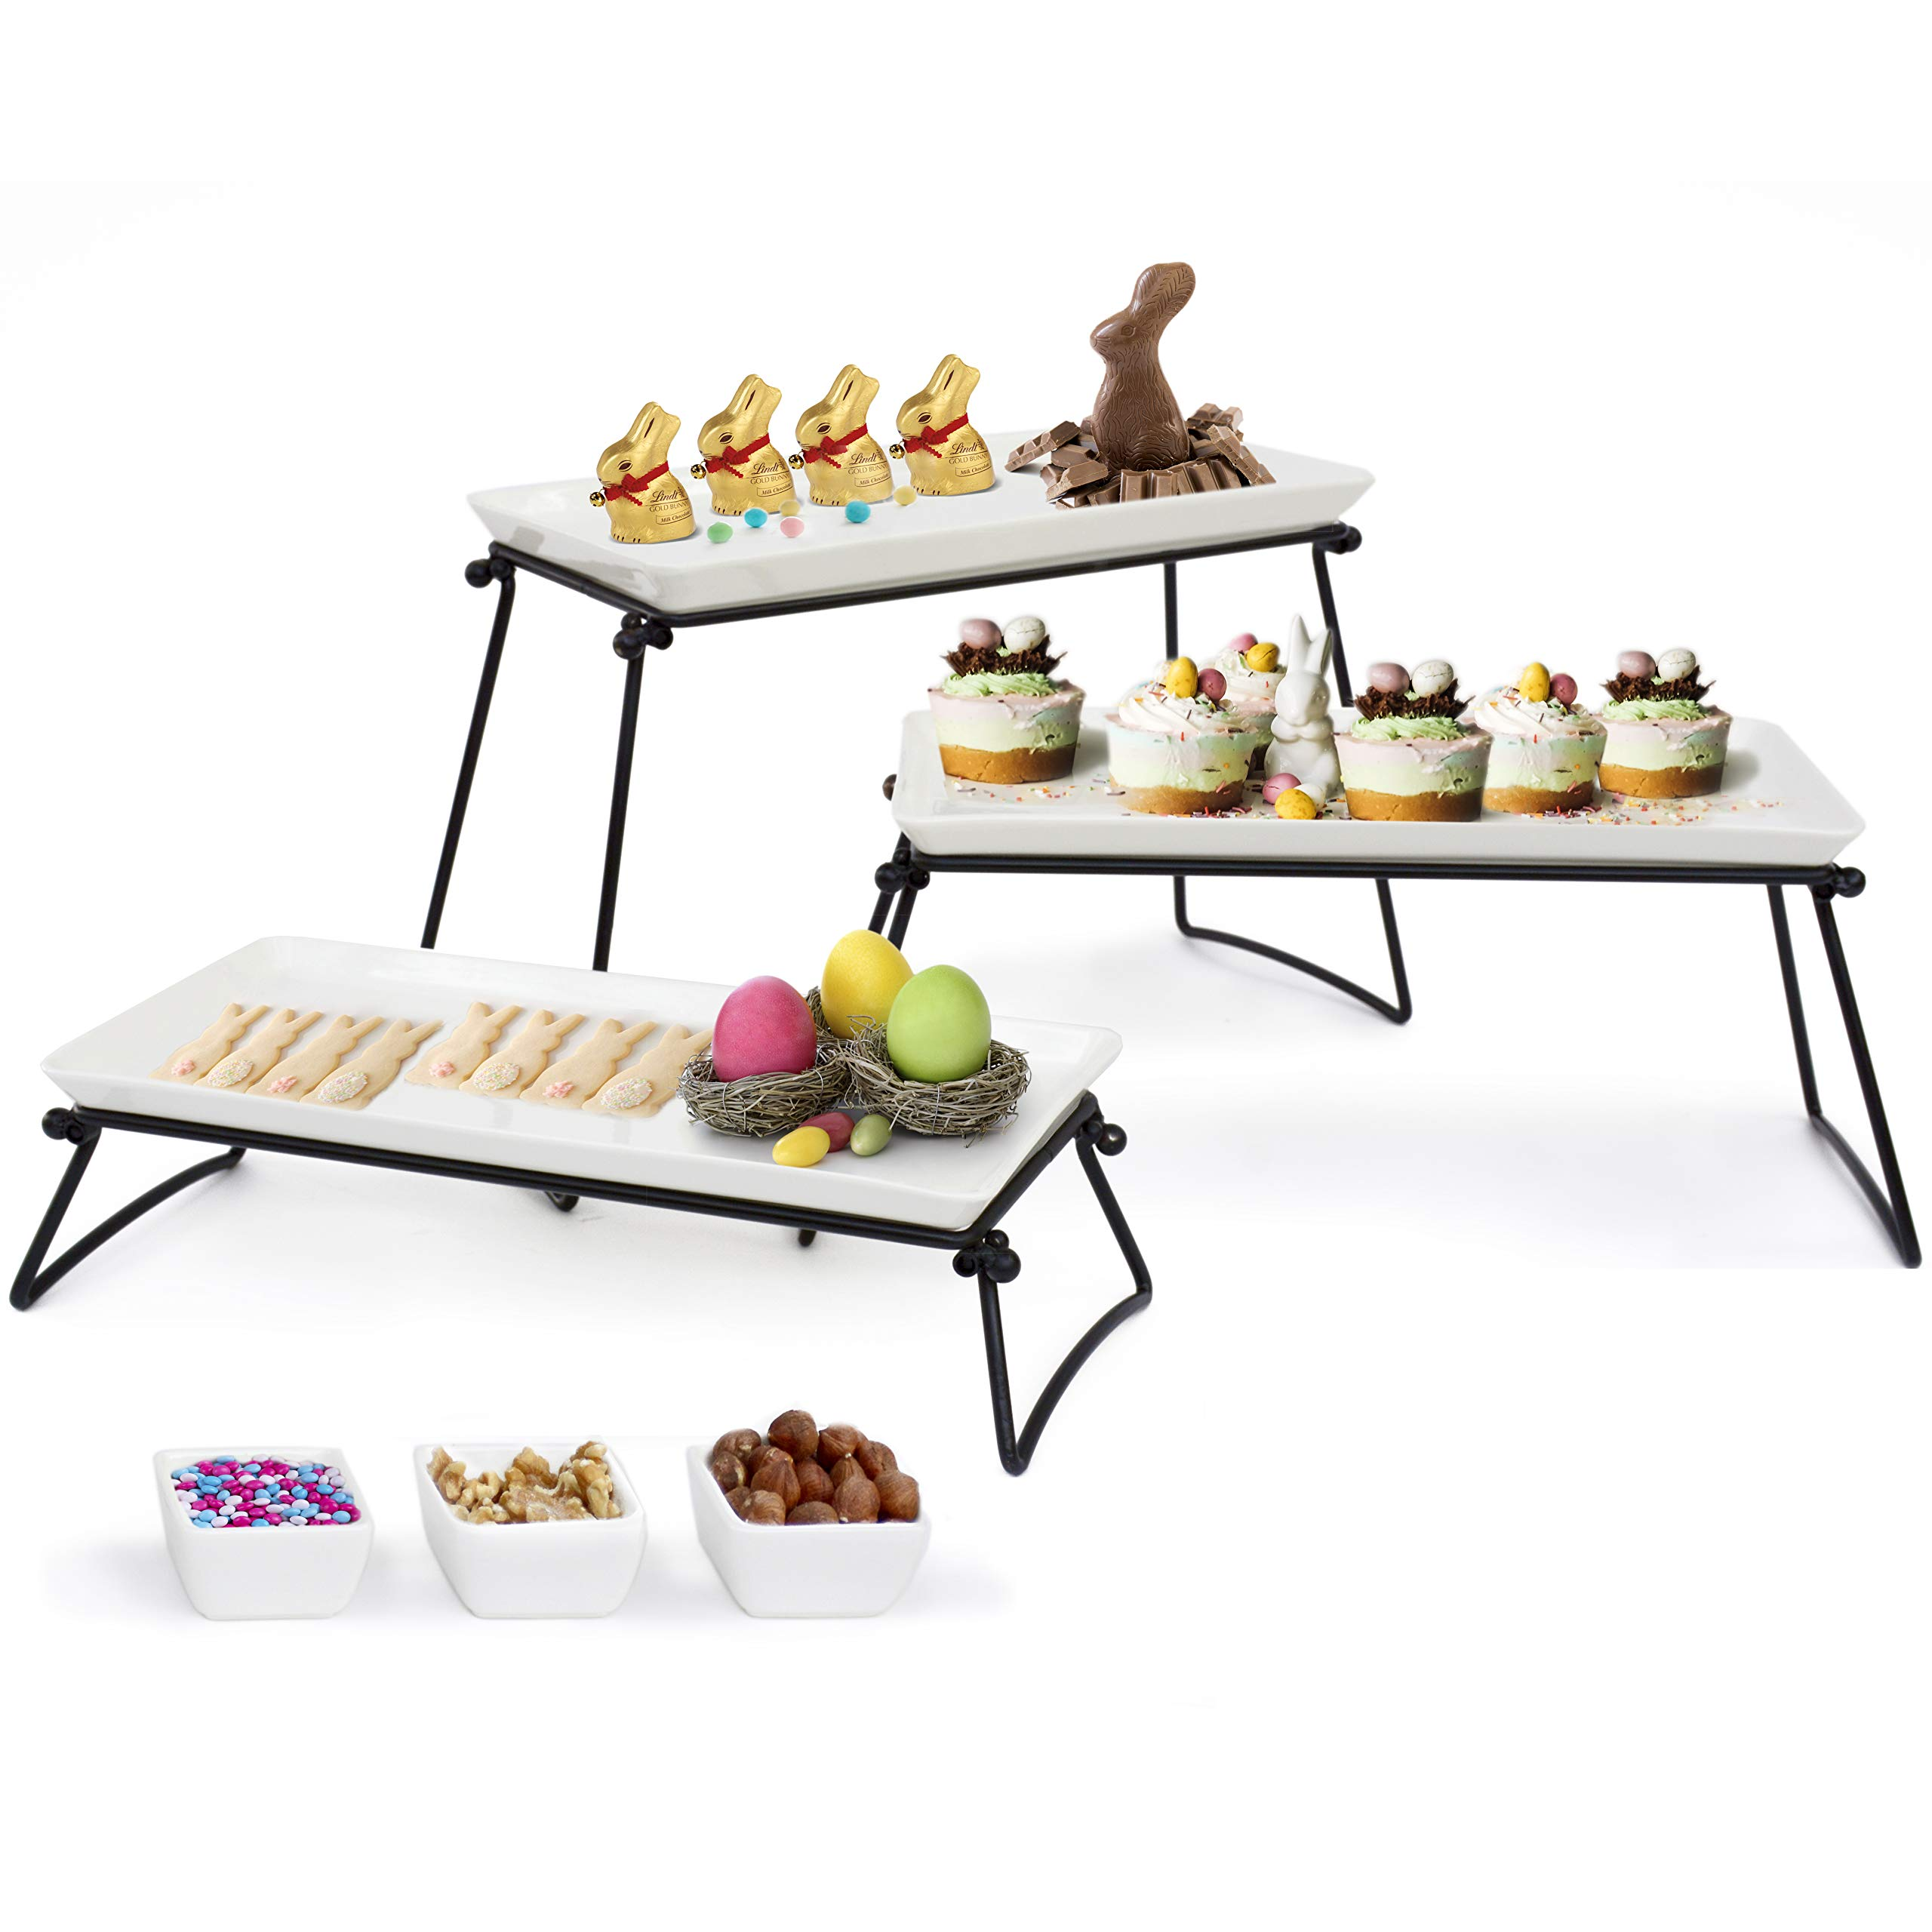 Elegant 3 Tier Serving Stand- New 2019 Model – 3 X-Large Ceramic Plates (13.5''x6.5'') +3 Sauce Dishes – The Complete Serving Set For Parties By Elite Creations